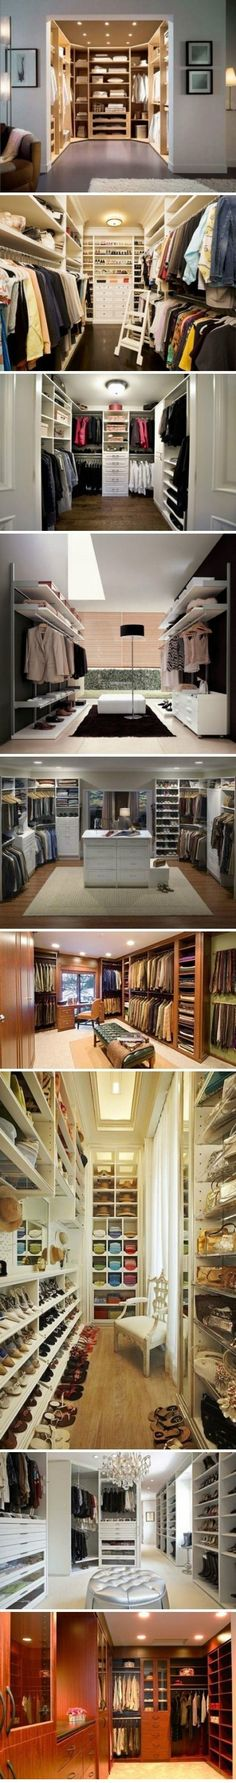 Walk-in closets!